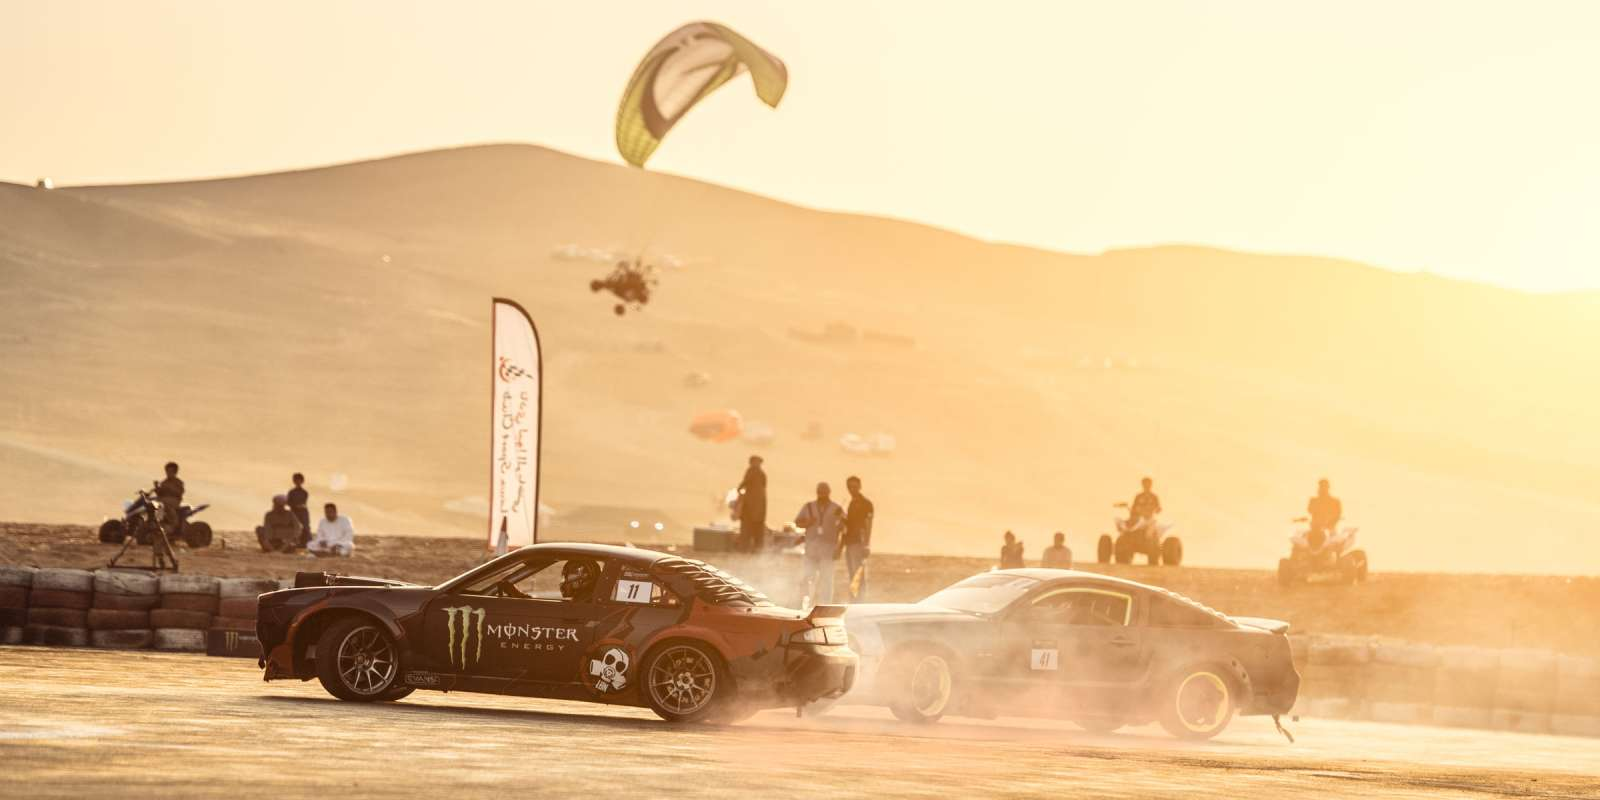 Newly formed, the most important driift event in the UAE. Monster sponsored the event and also drift crew, Lunatics who took the first place at EDC R1